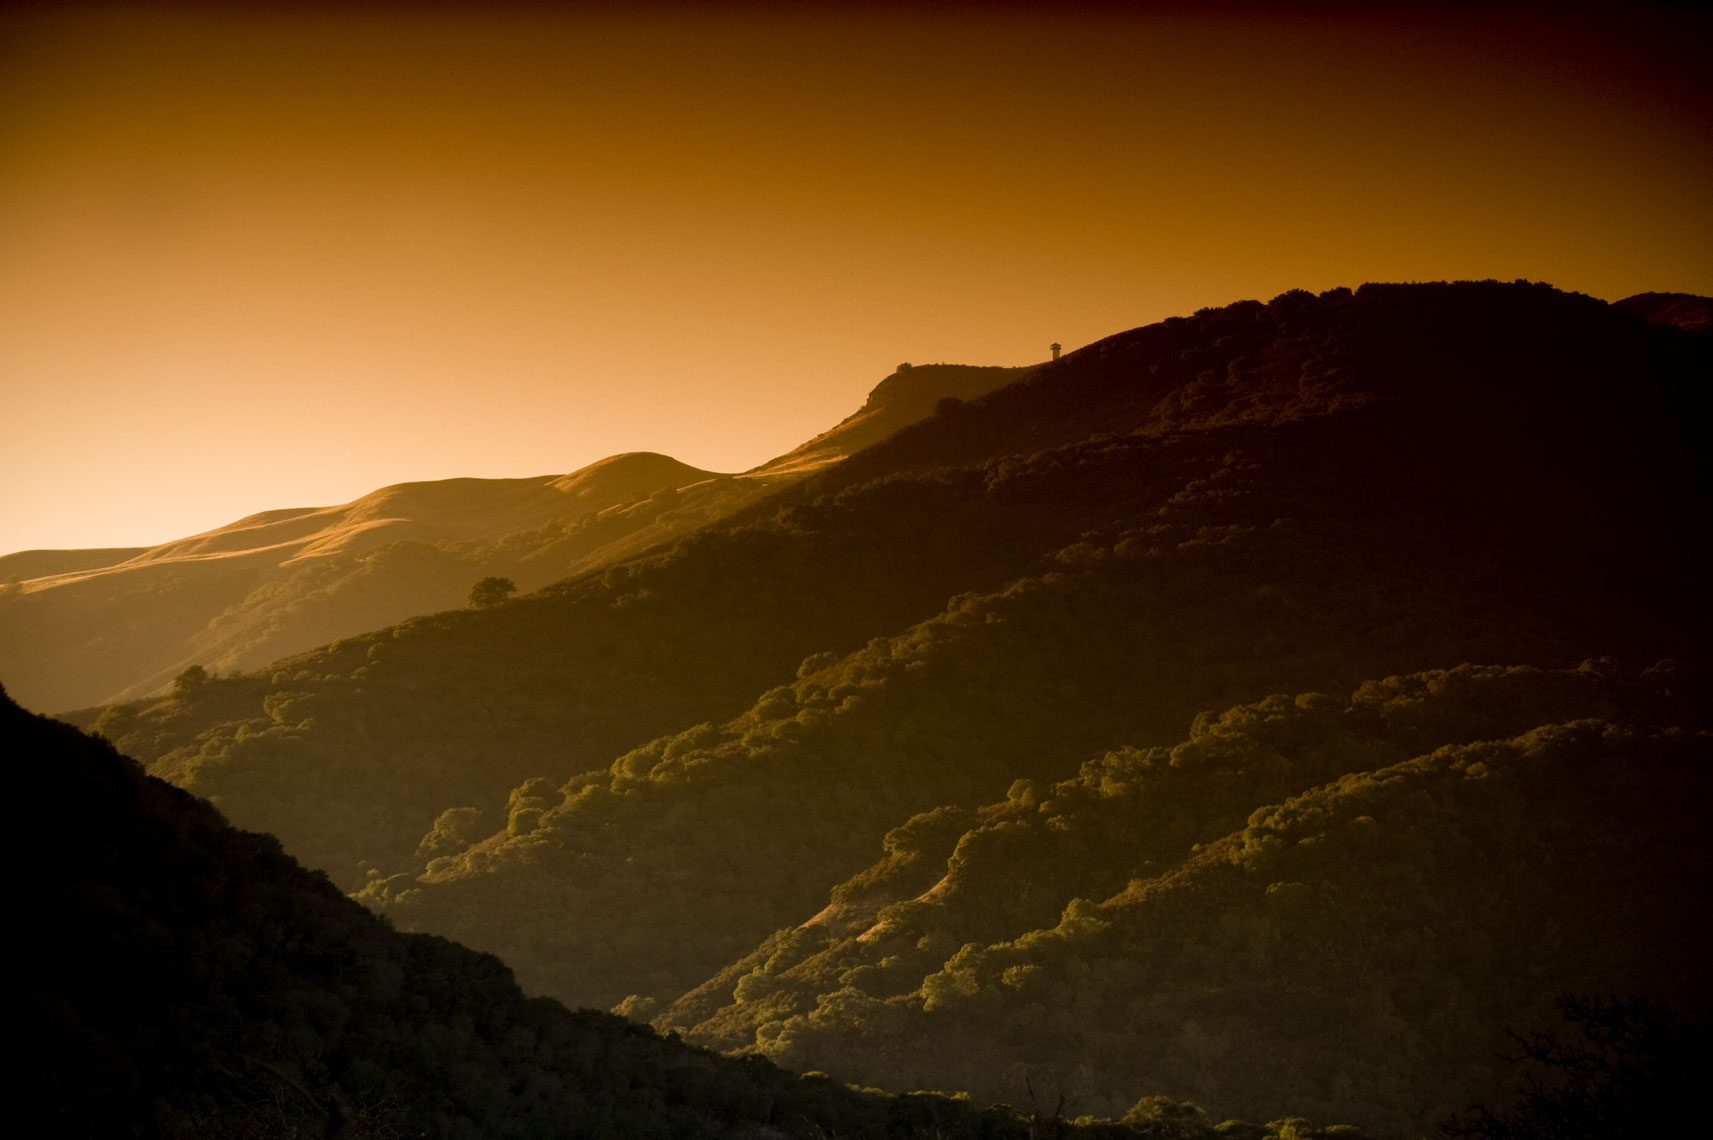 Carmel Valley by California landscape photographer Mike Morgan.